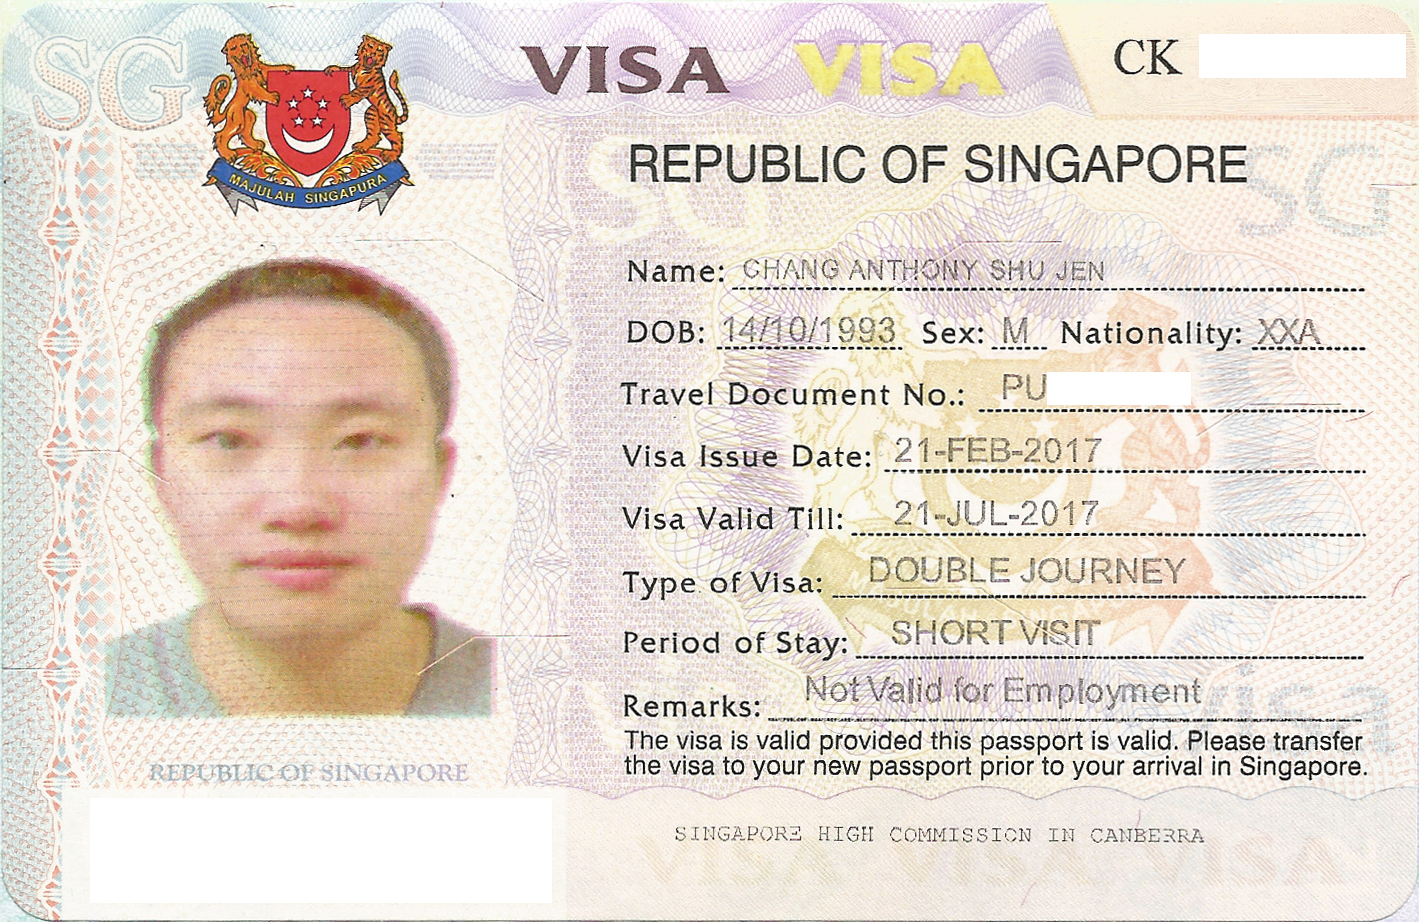 TOURIST Visa Requirements for SINGAPORE